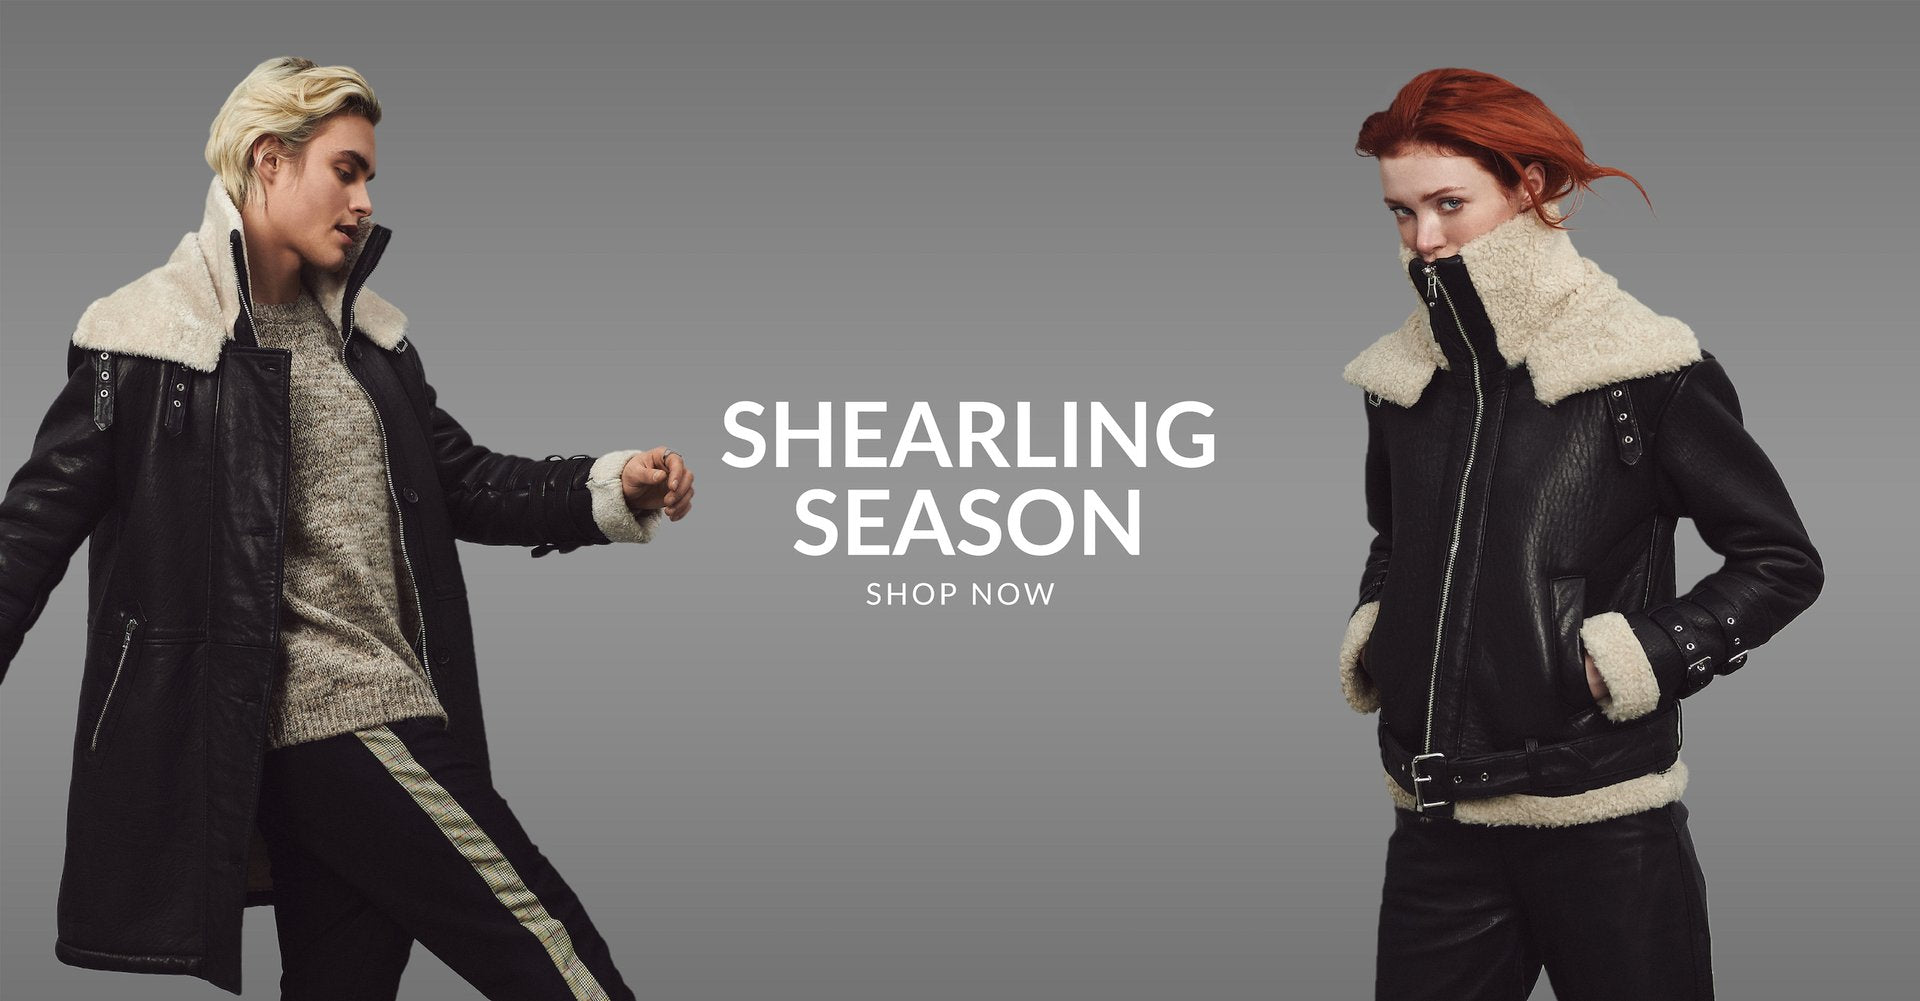 Be Edgy Berlin Shearling Season